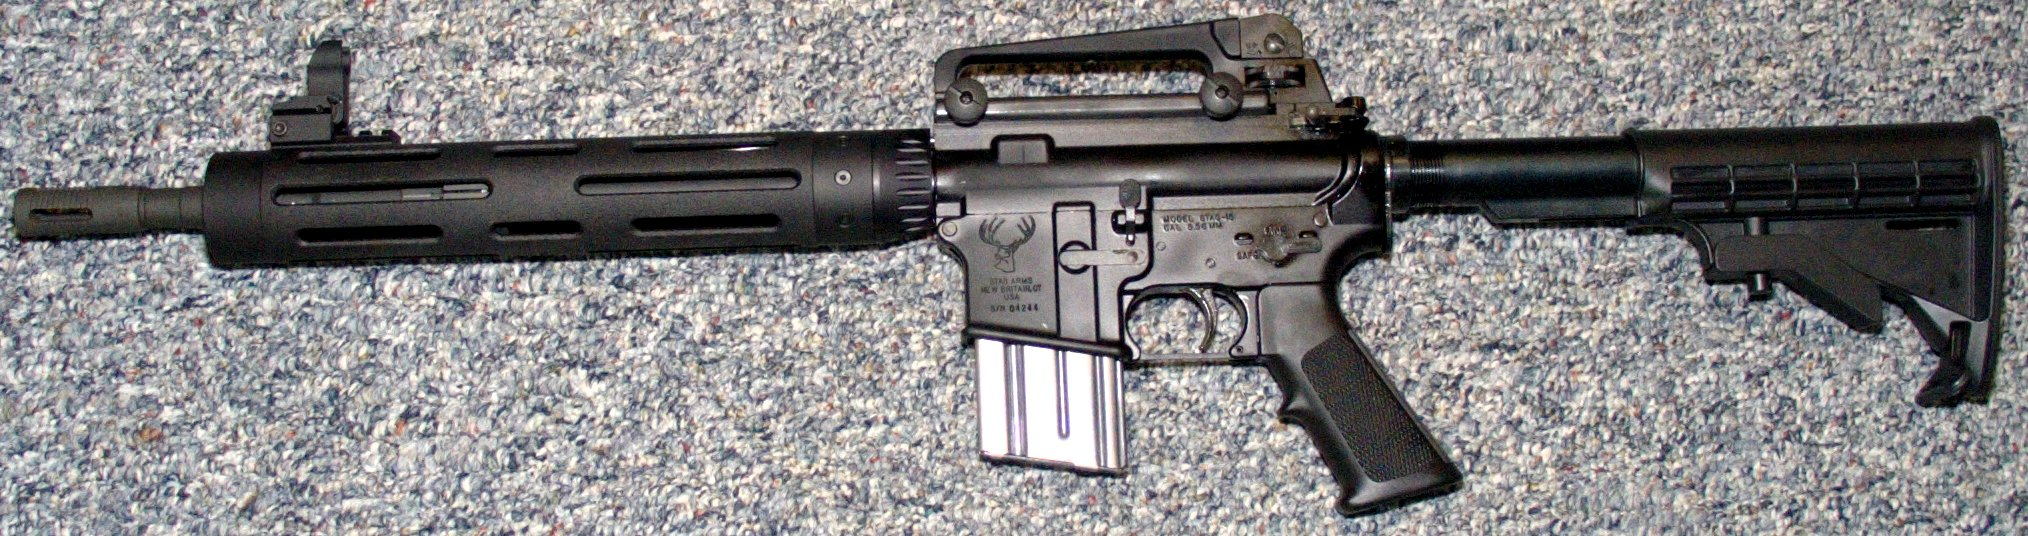 AR15 completely assembled  Ar15